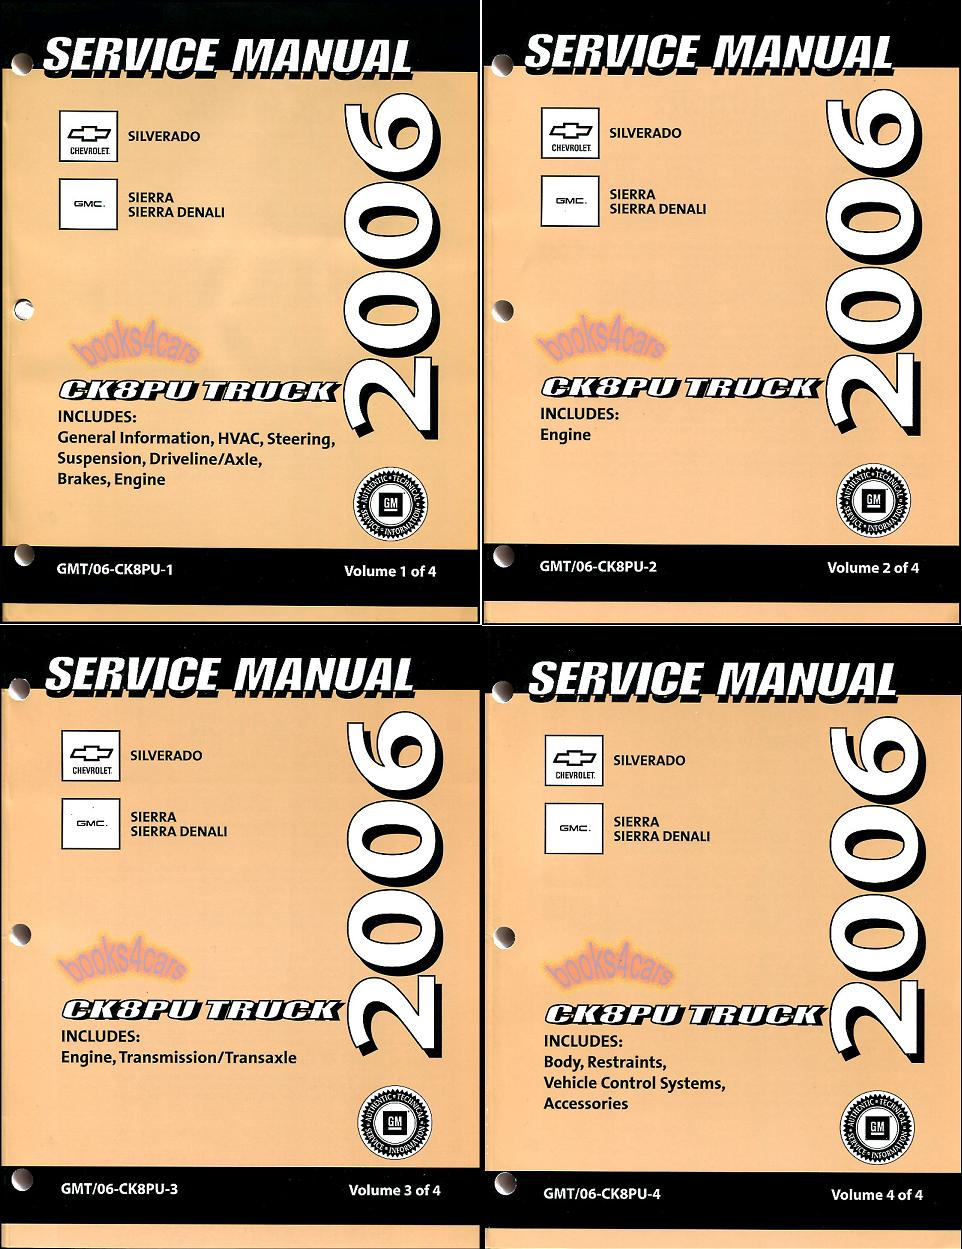 2006 gmc sierra shop manual how to and user guide instructions u2022 rh taxibermuda co gm factory service manual chevrolet silverado gmc factory service manual 2500 4x4 pu